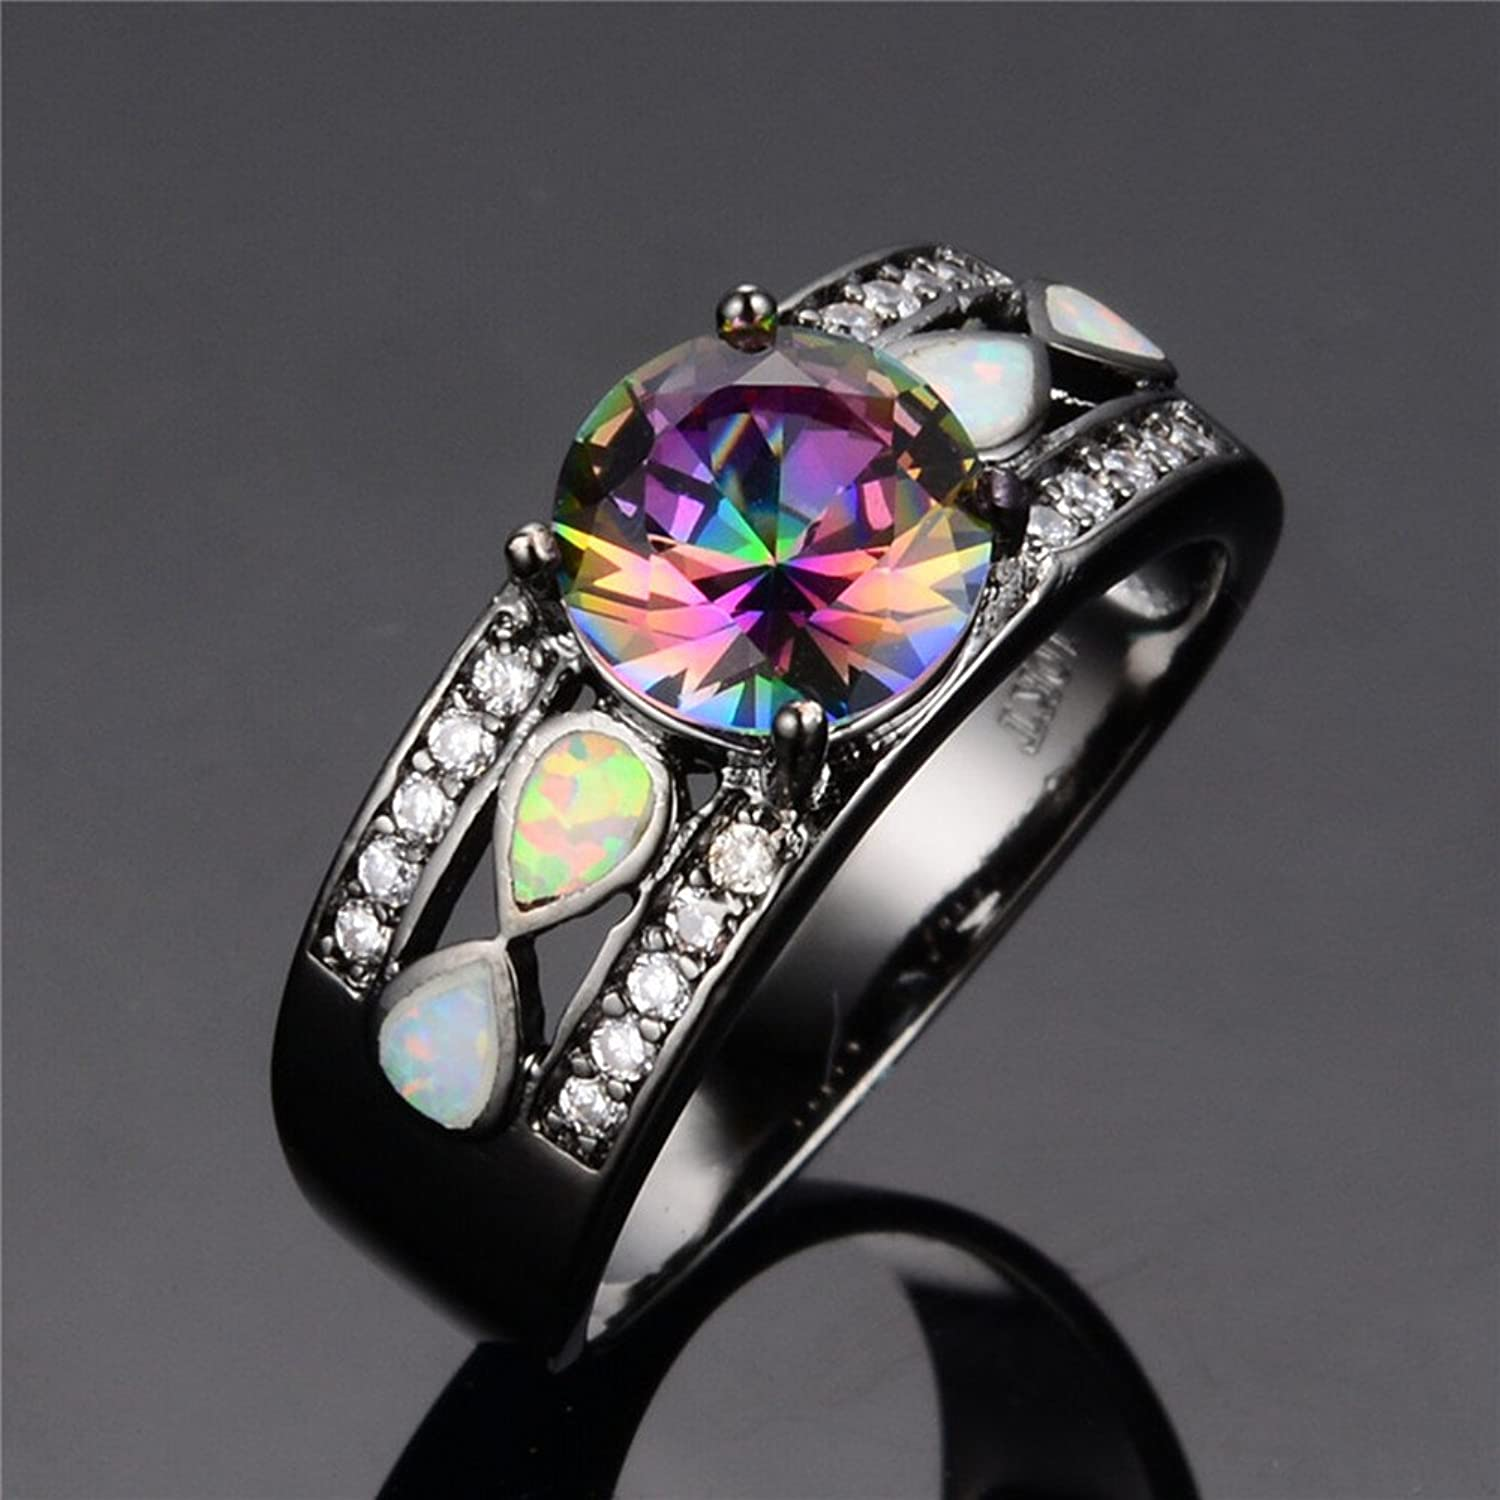 gemstone shirleysteffen mystic best topaz pinterest rings fire on images ring